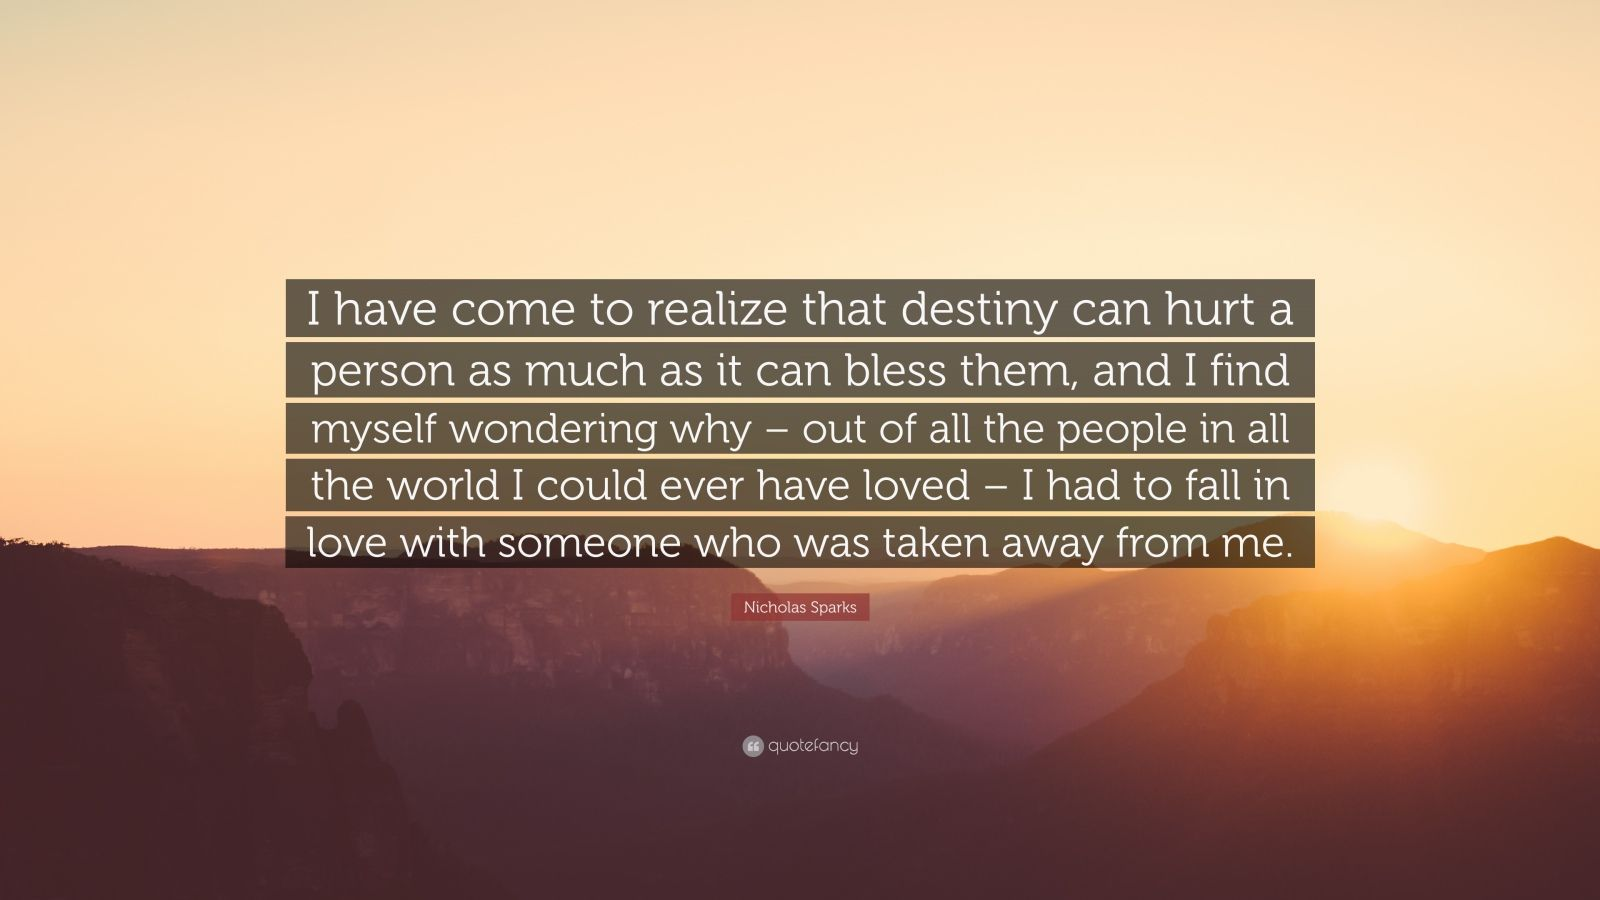 """Nicholas Sparks Quote: """"I have come to realize that destiny can hurt a person as much as it can bless them, and I find myself wondering why – out of all the people in all the world I could ever have loved – I had to fall in love with someone who was taken away from me."""""""